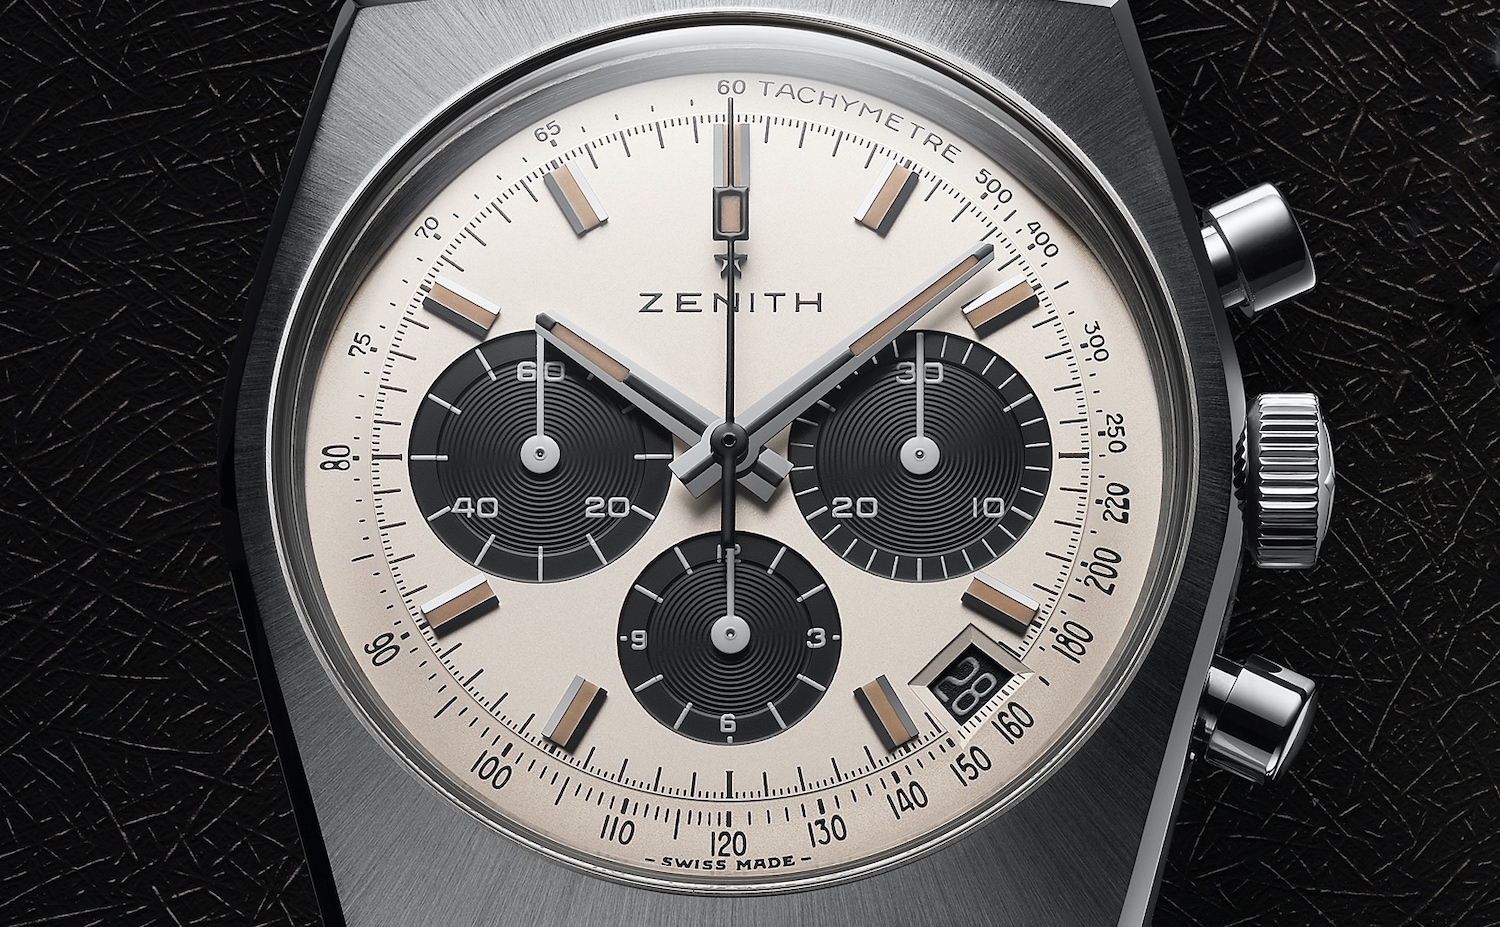 Zenith Chronomaster Revival A384 Lupin The Third - 2nd Edition - dial